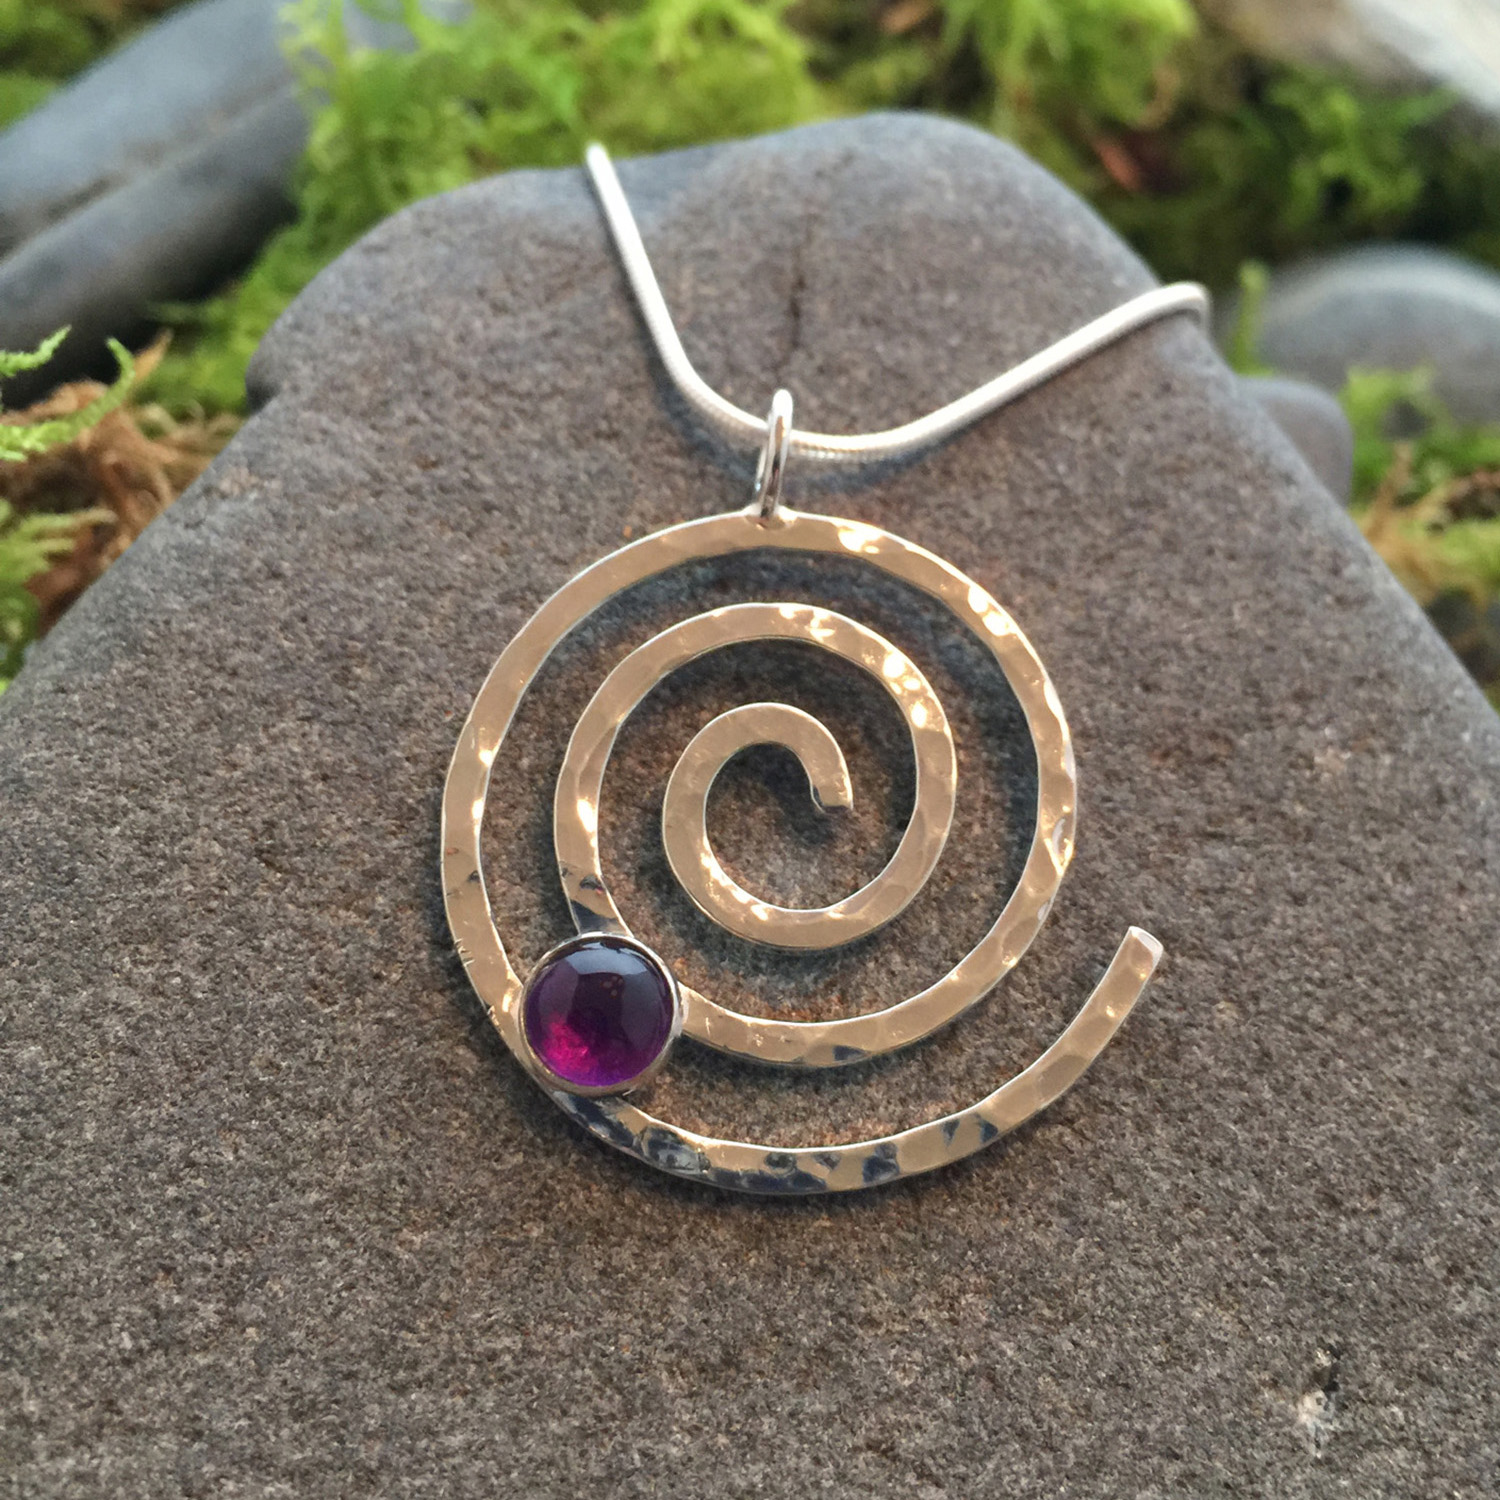 Saucy Jewelry spiral pendant with red gem